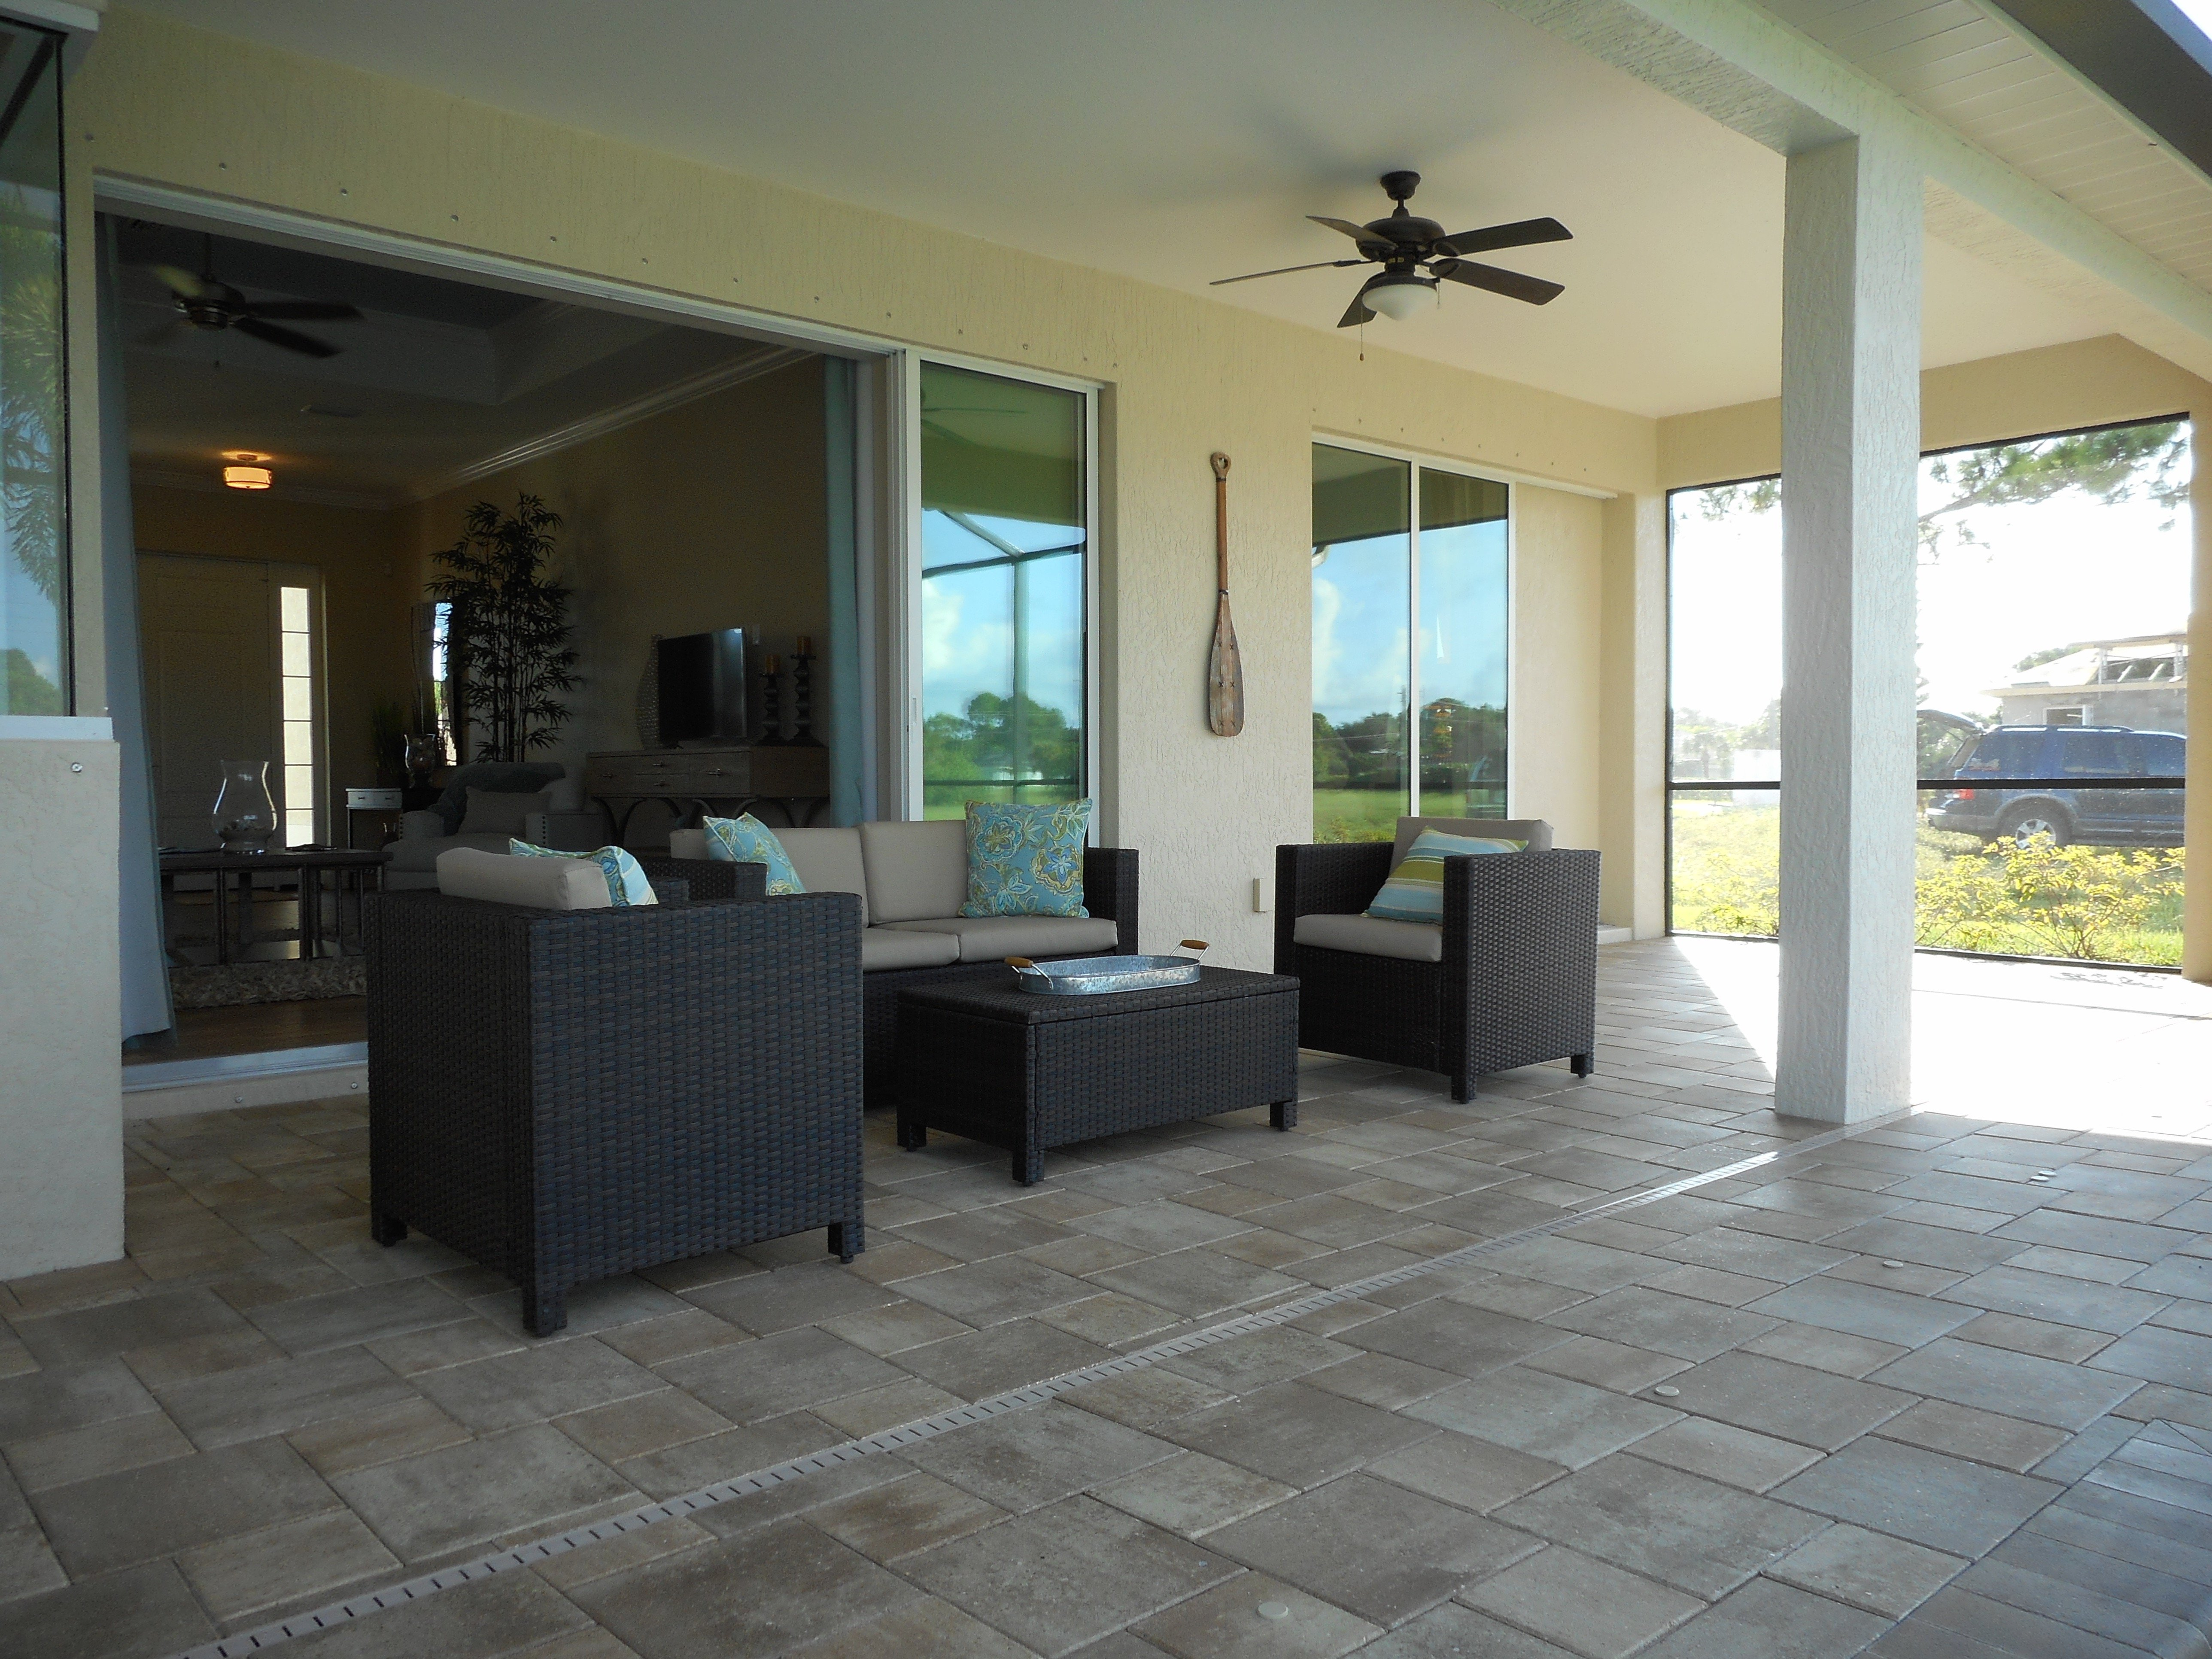 Home Remodeling Services in South Gulf Cove, FL